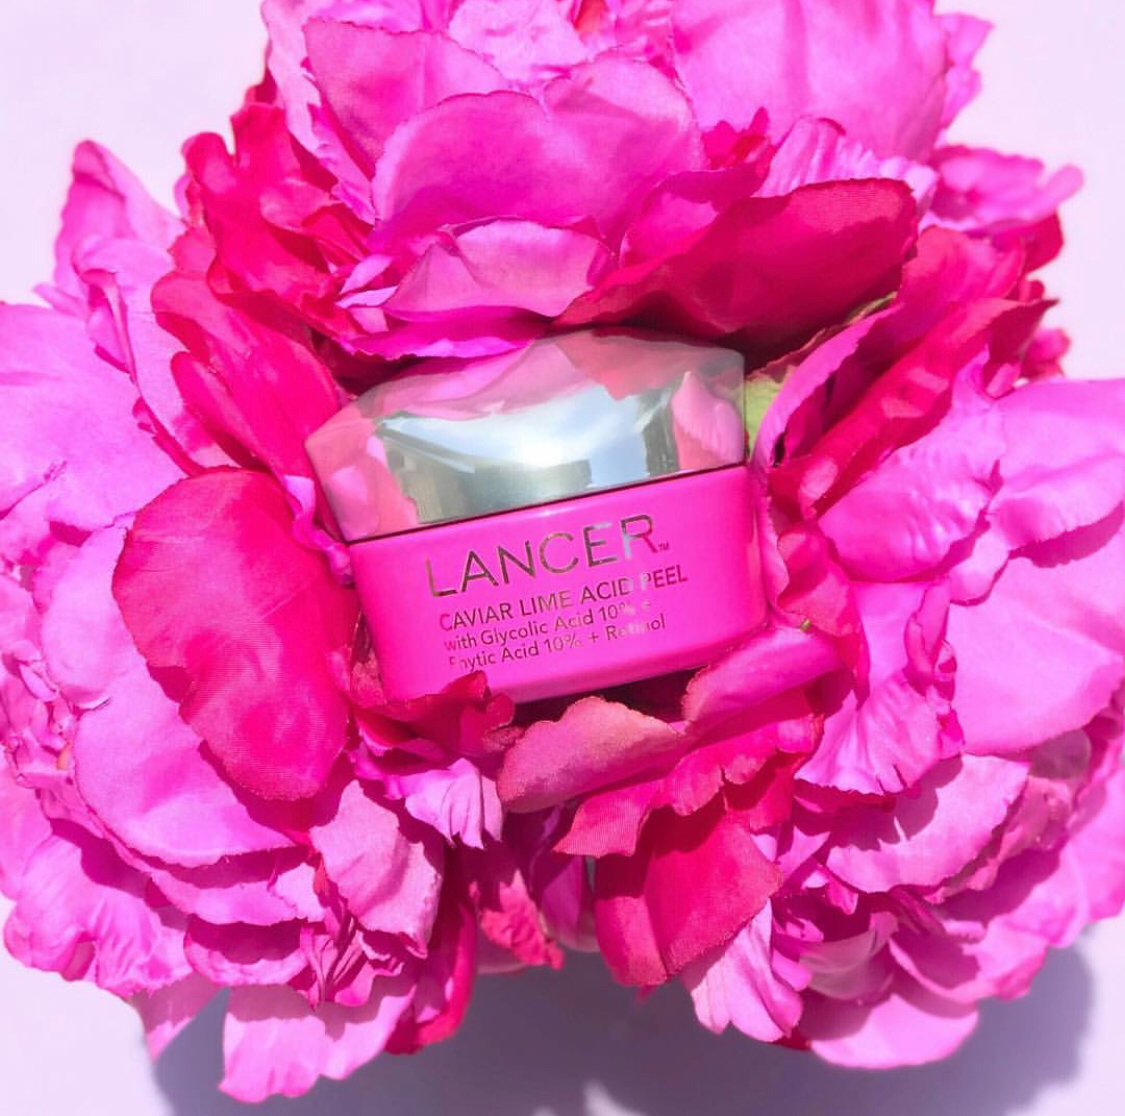 Treat your mom to Lancer Skincare products this Mother's Day